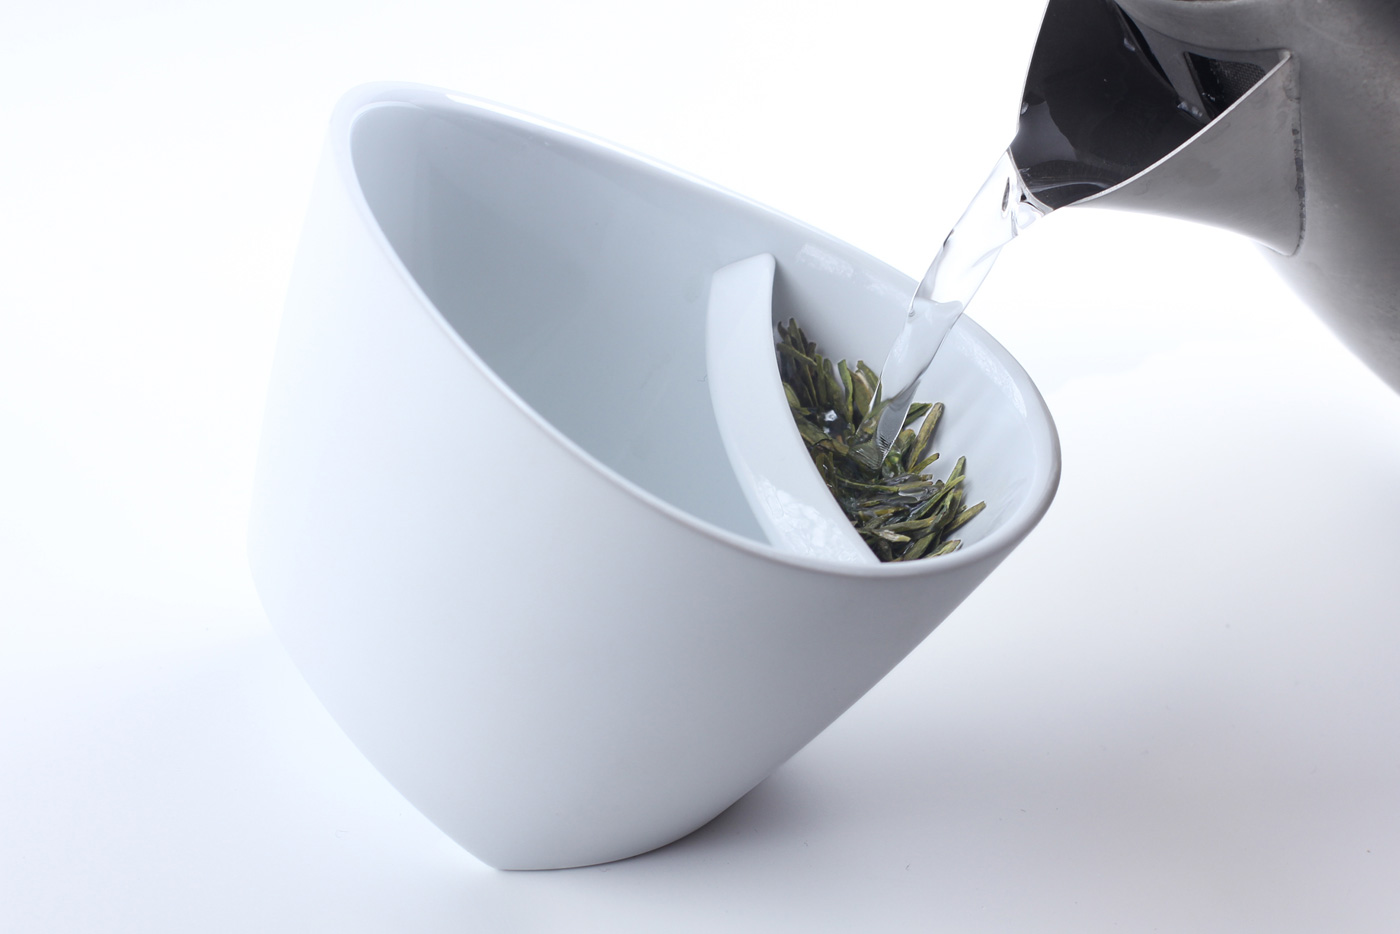 awesome-design-ideas-Teacup-Laura-Bougdanos-magisso-4